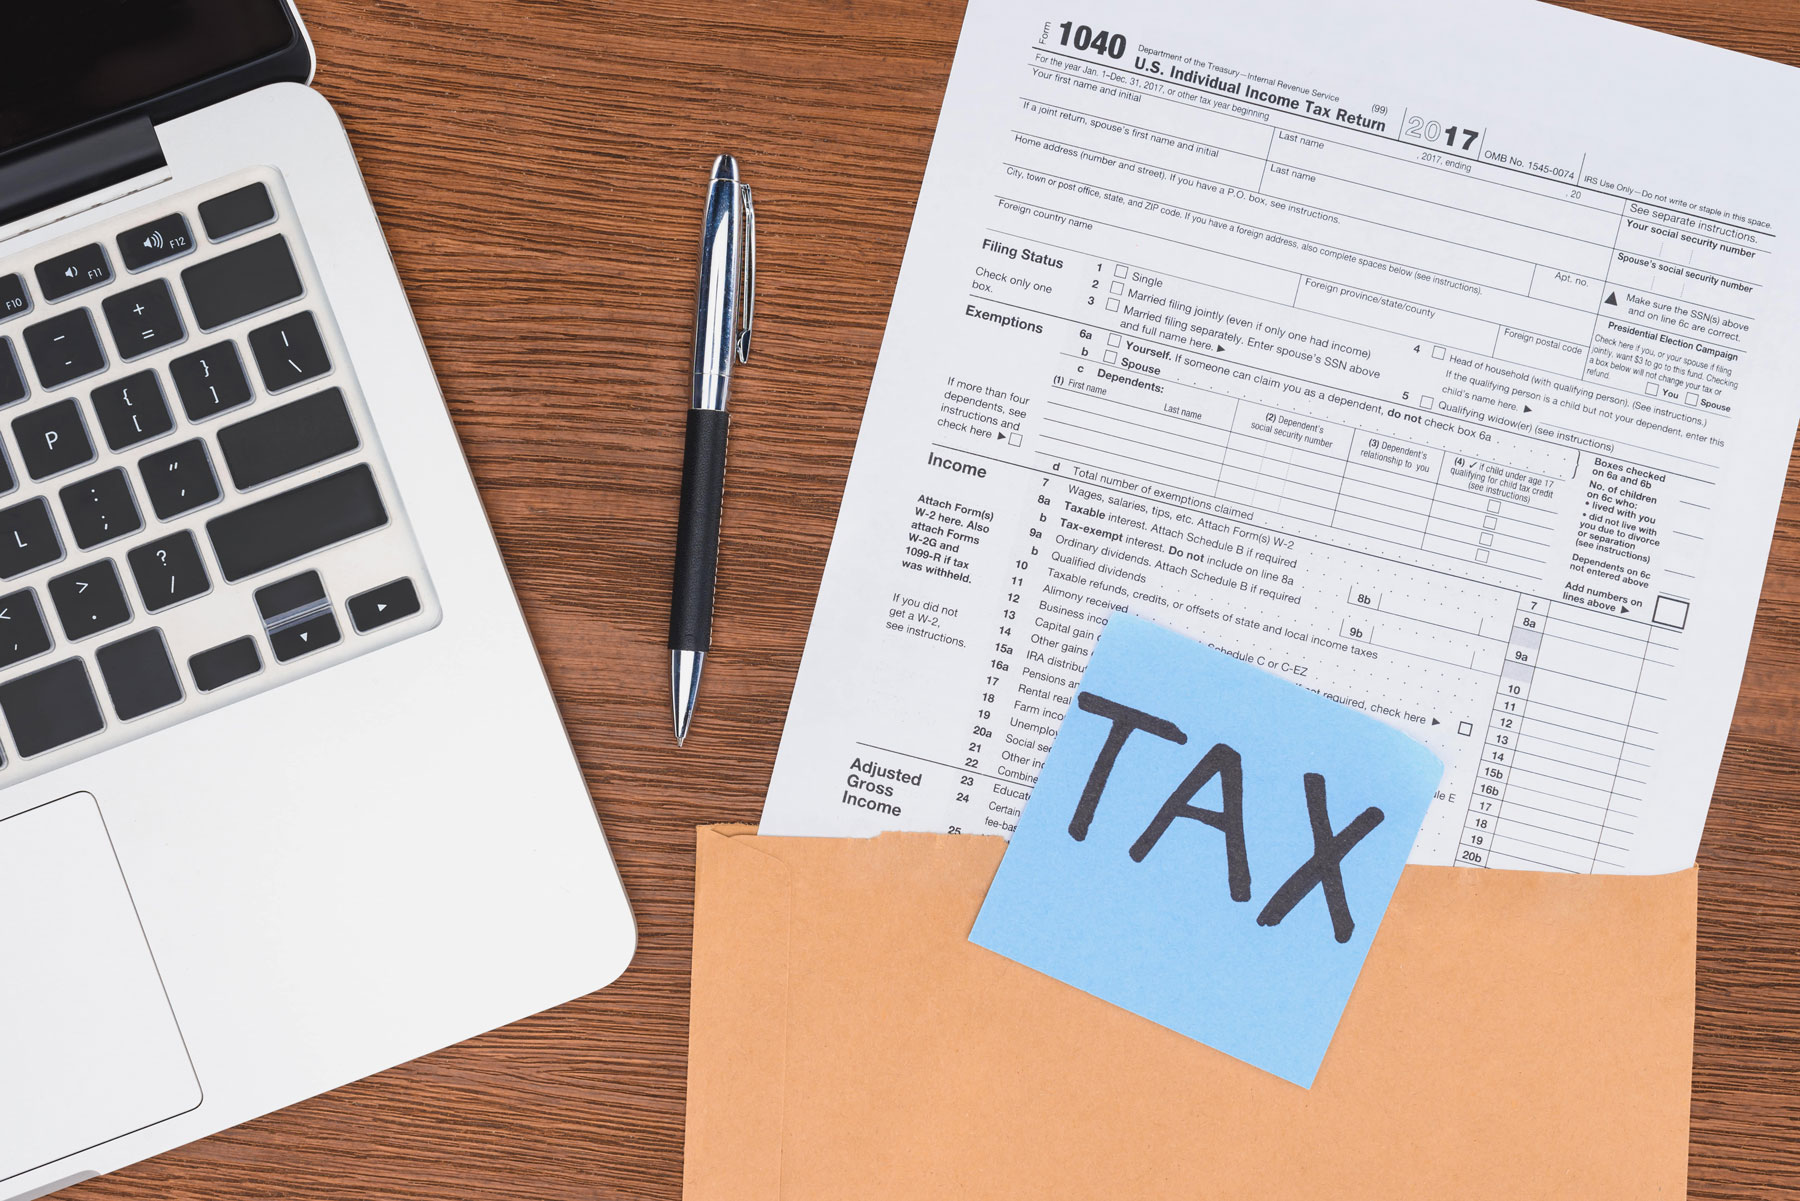 Filling Out Tax forms